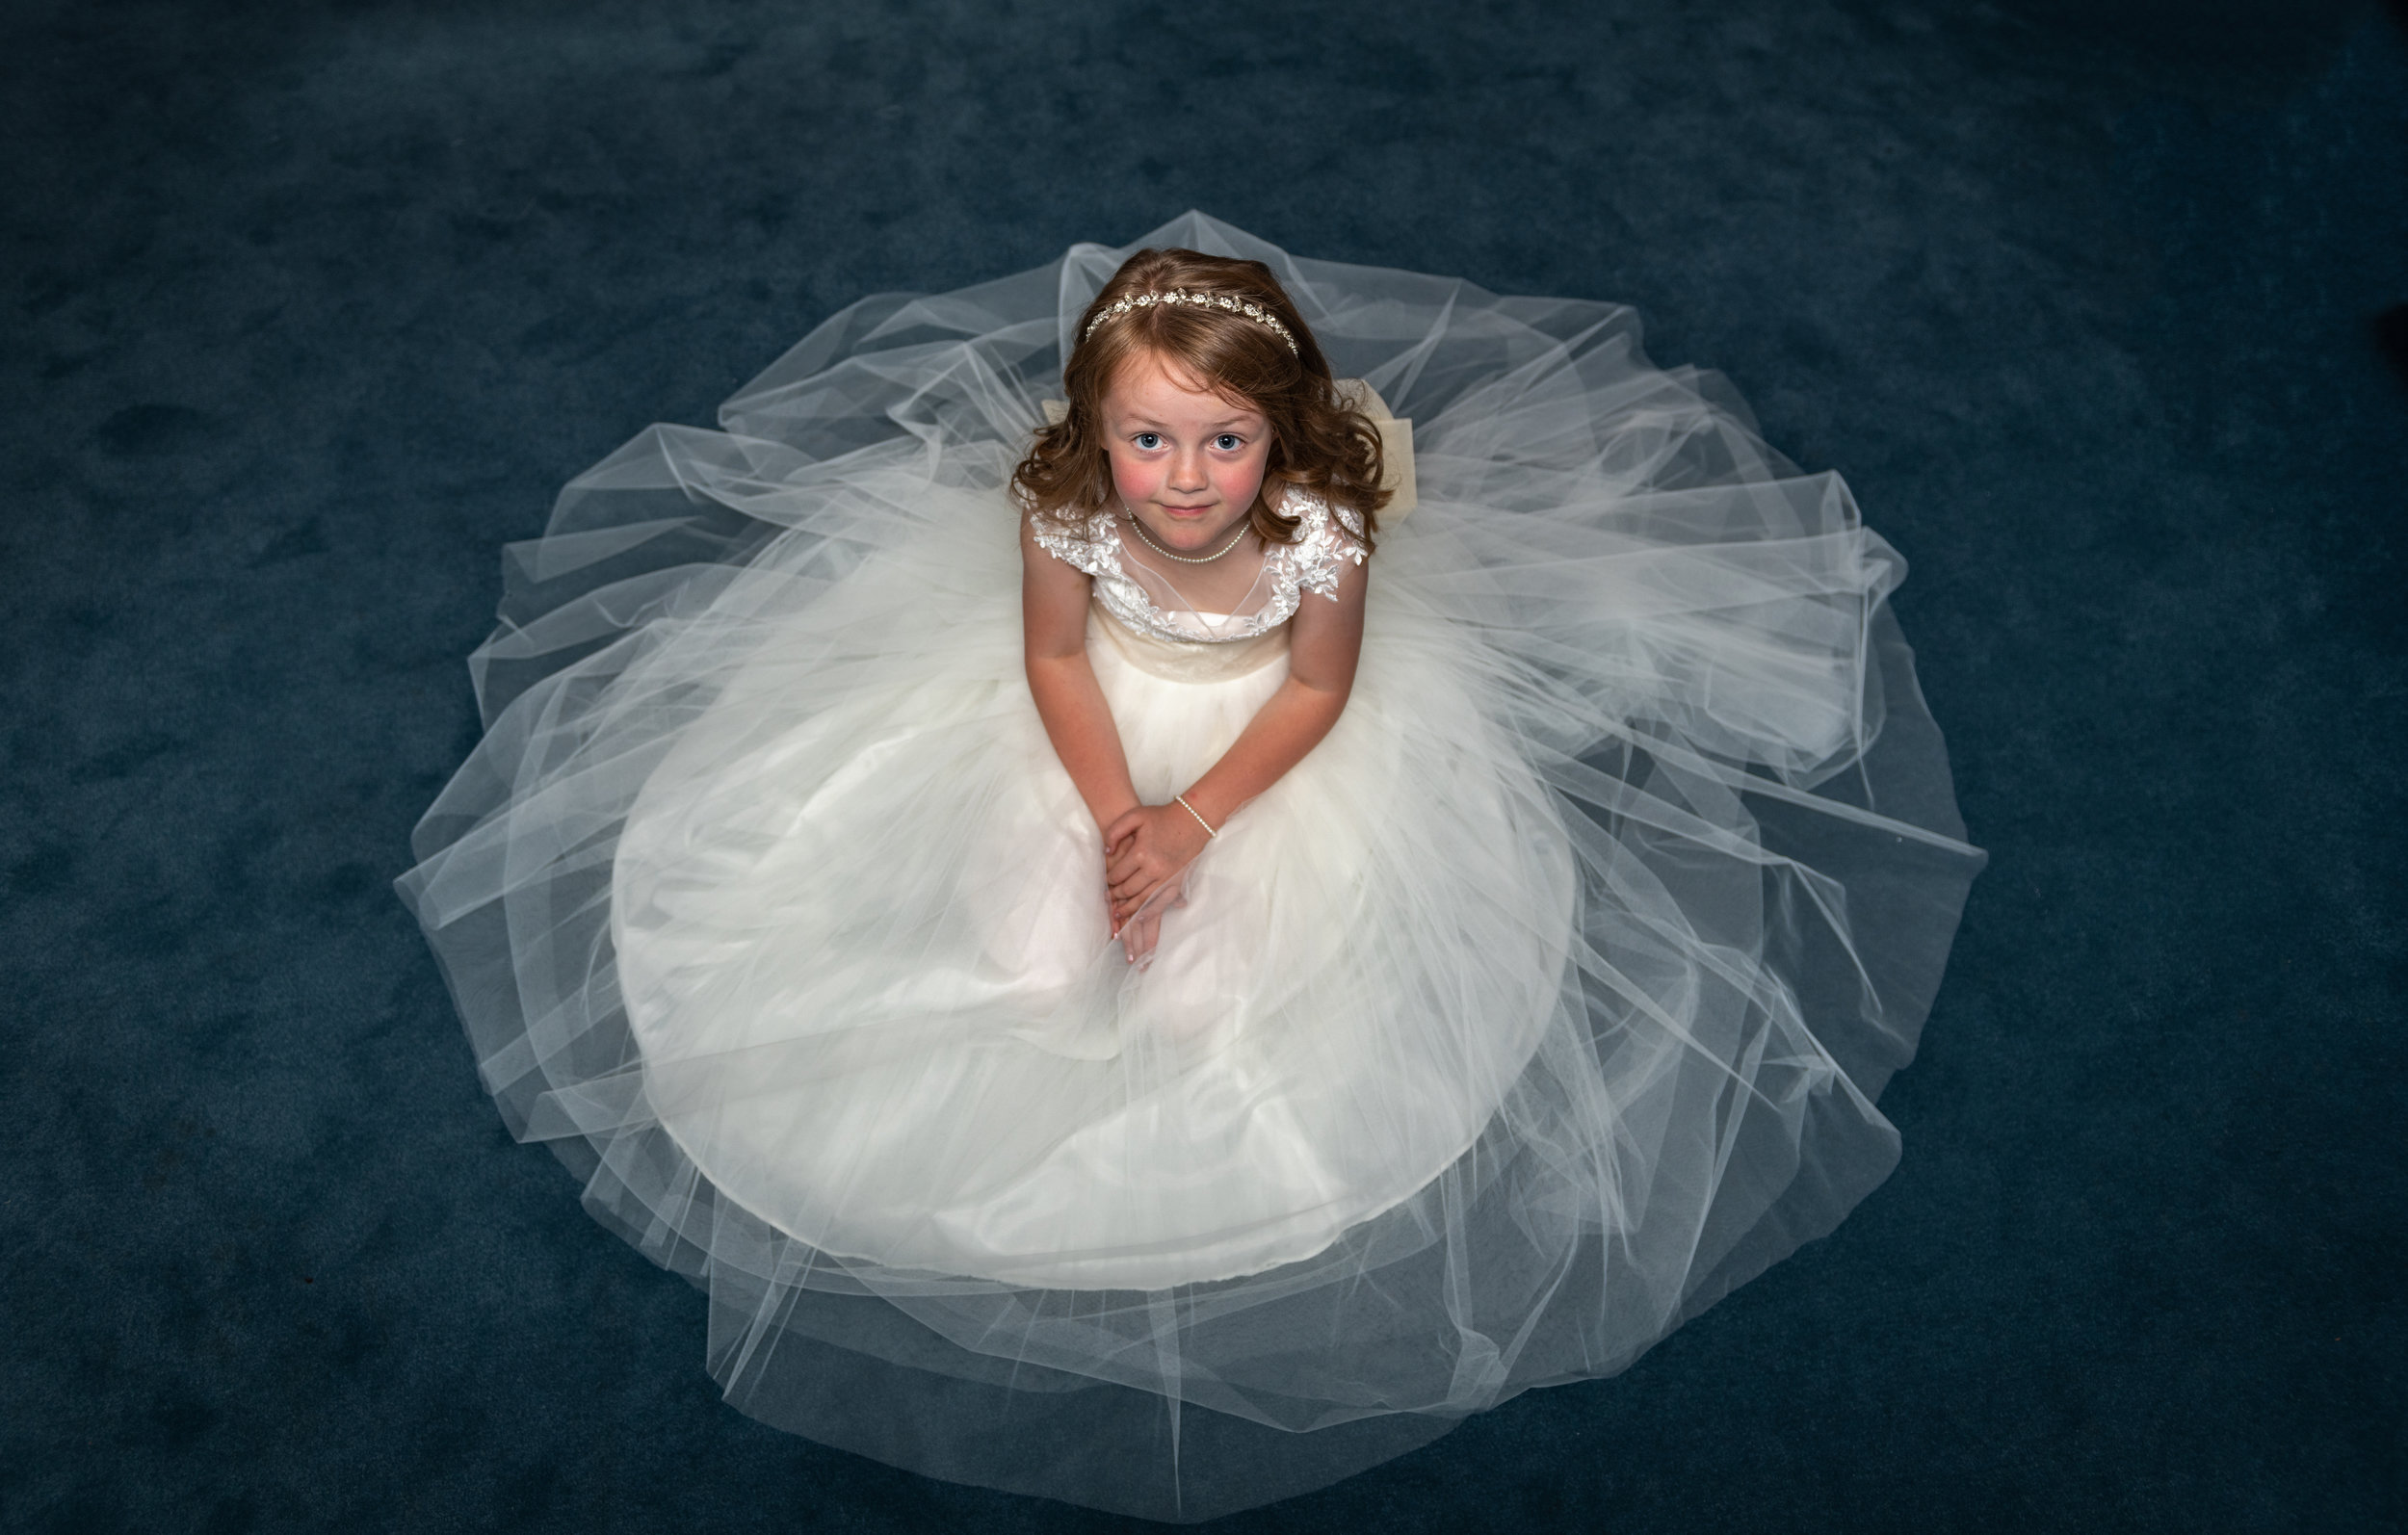 The adorable Flower Girl Amelia patiently waiting for everyone to finish dressing.